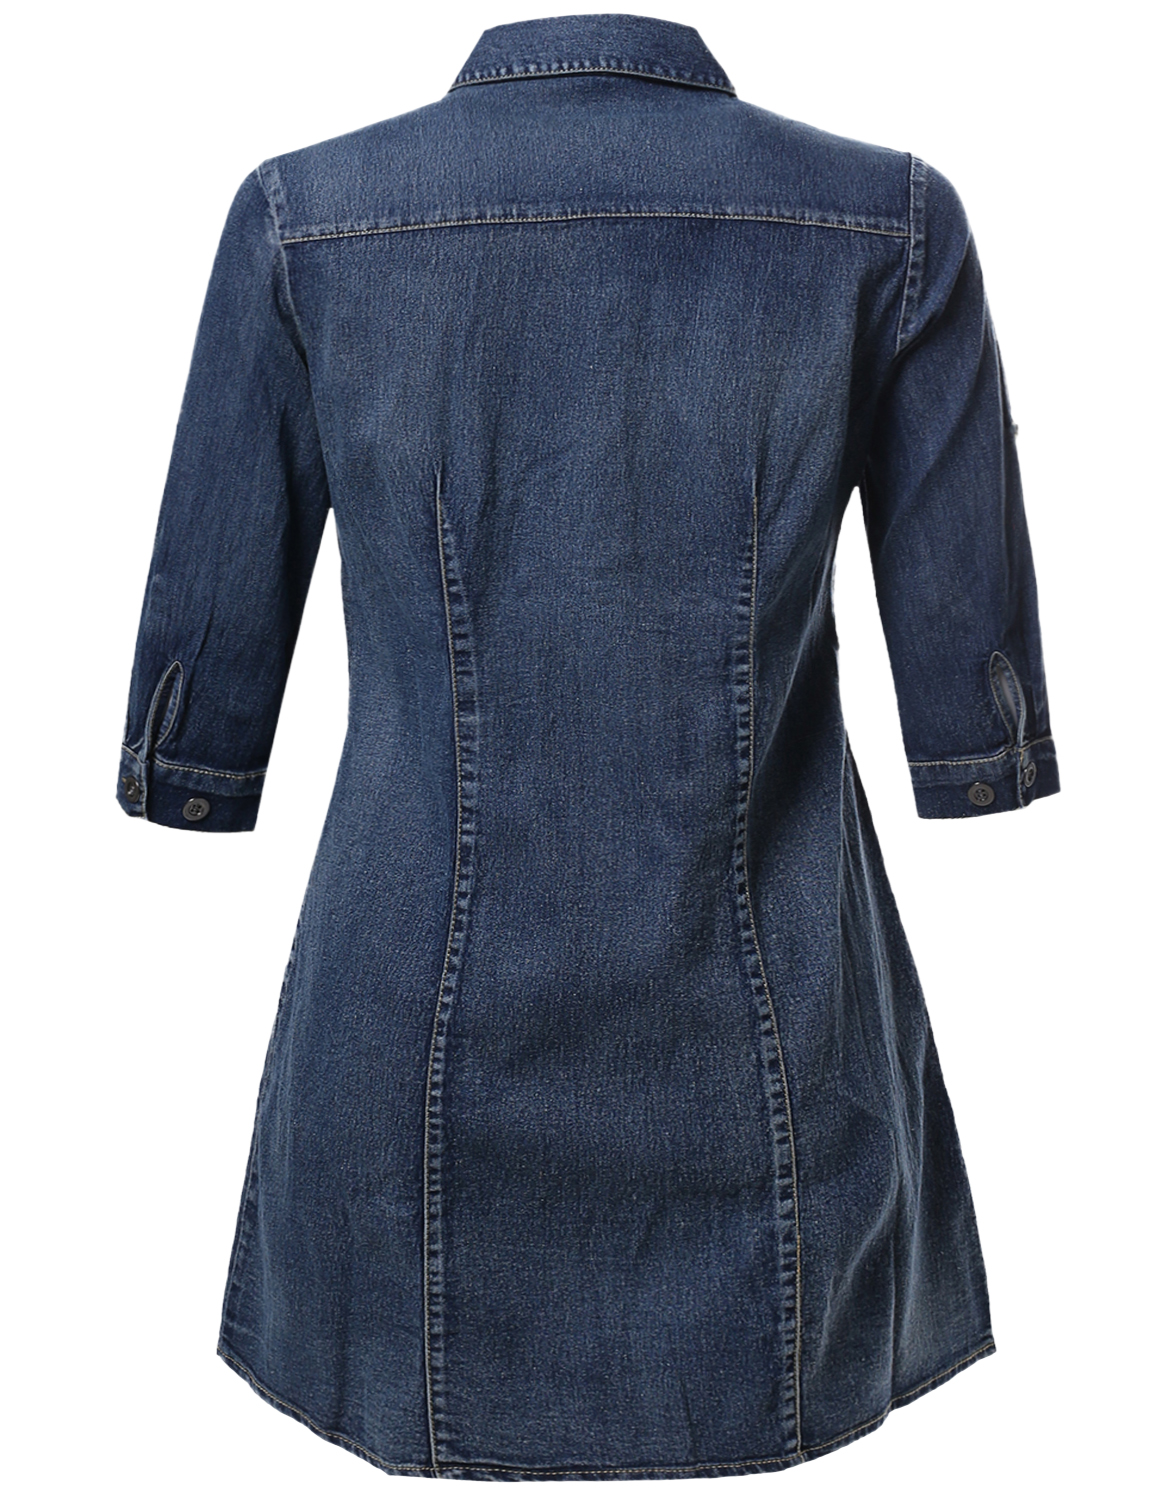 Fashionoutfit womens 3 4 sleeve button down denim chambray for Plus size chambray shirt